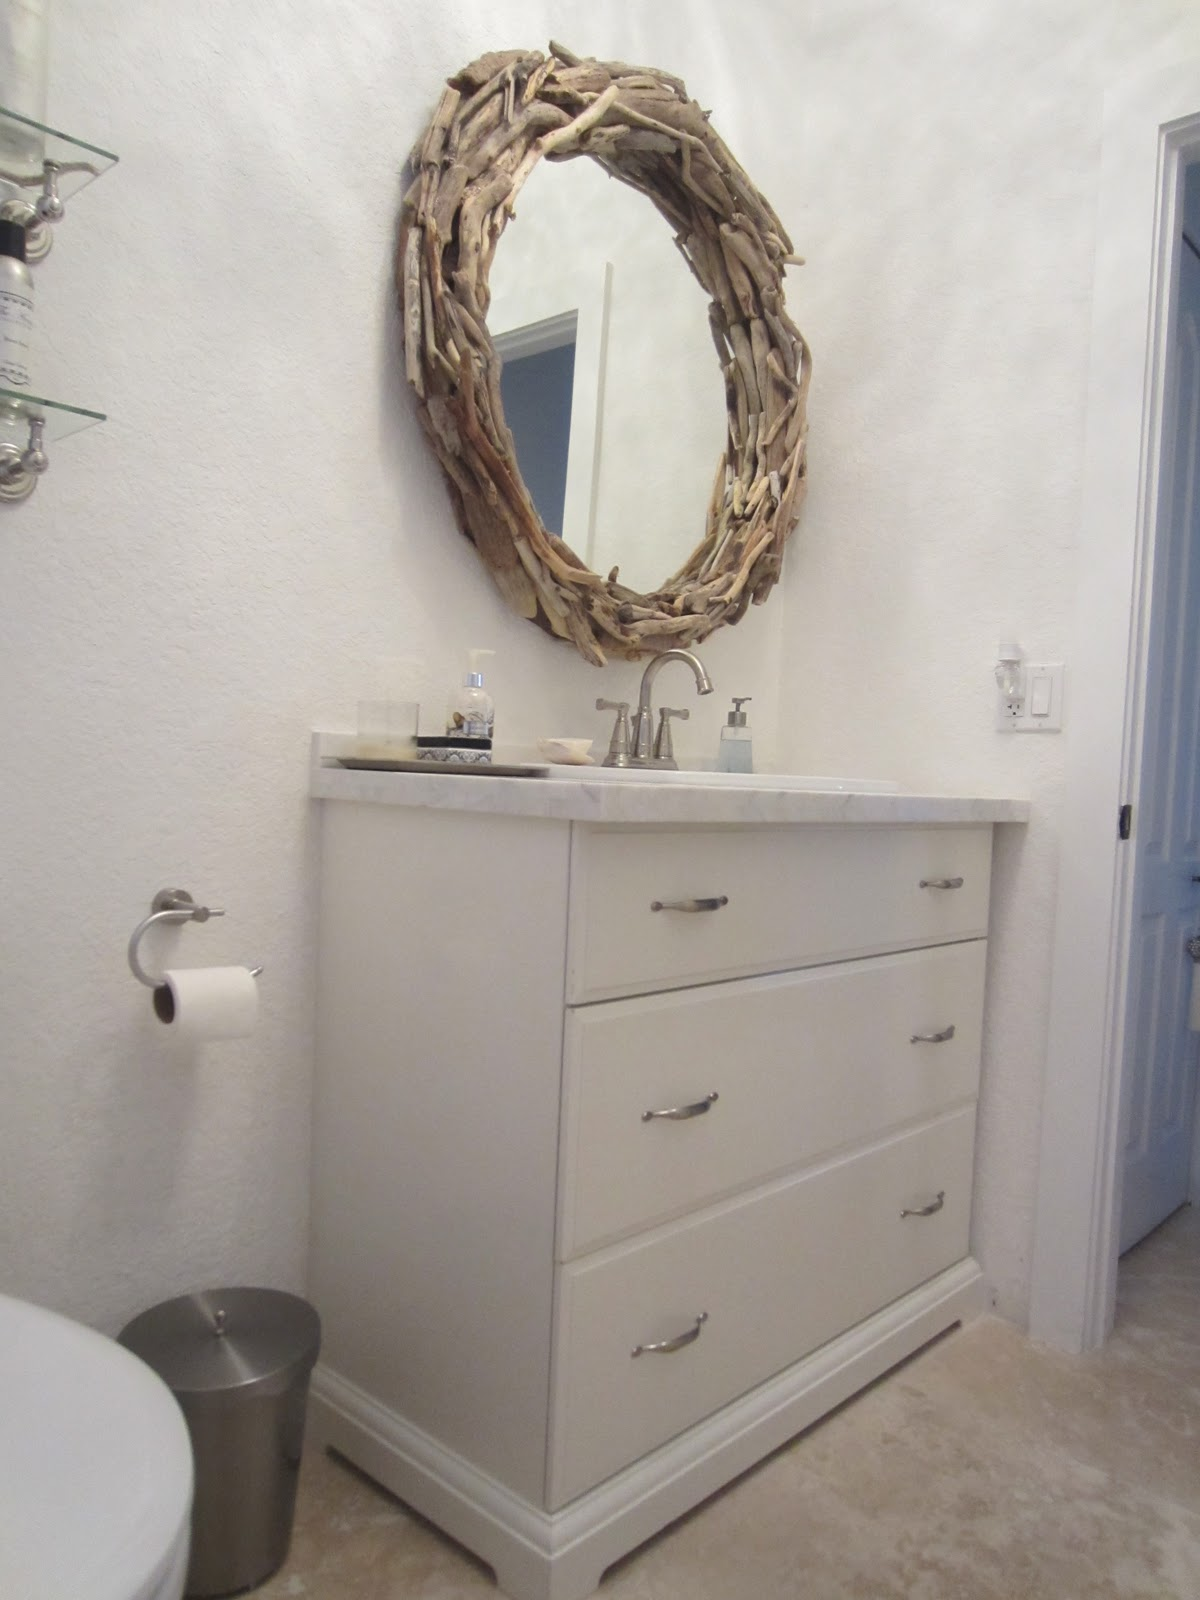 Finished Budget Guest Bathroom (Finally!!!)